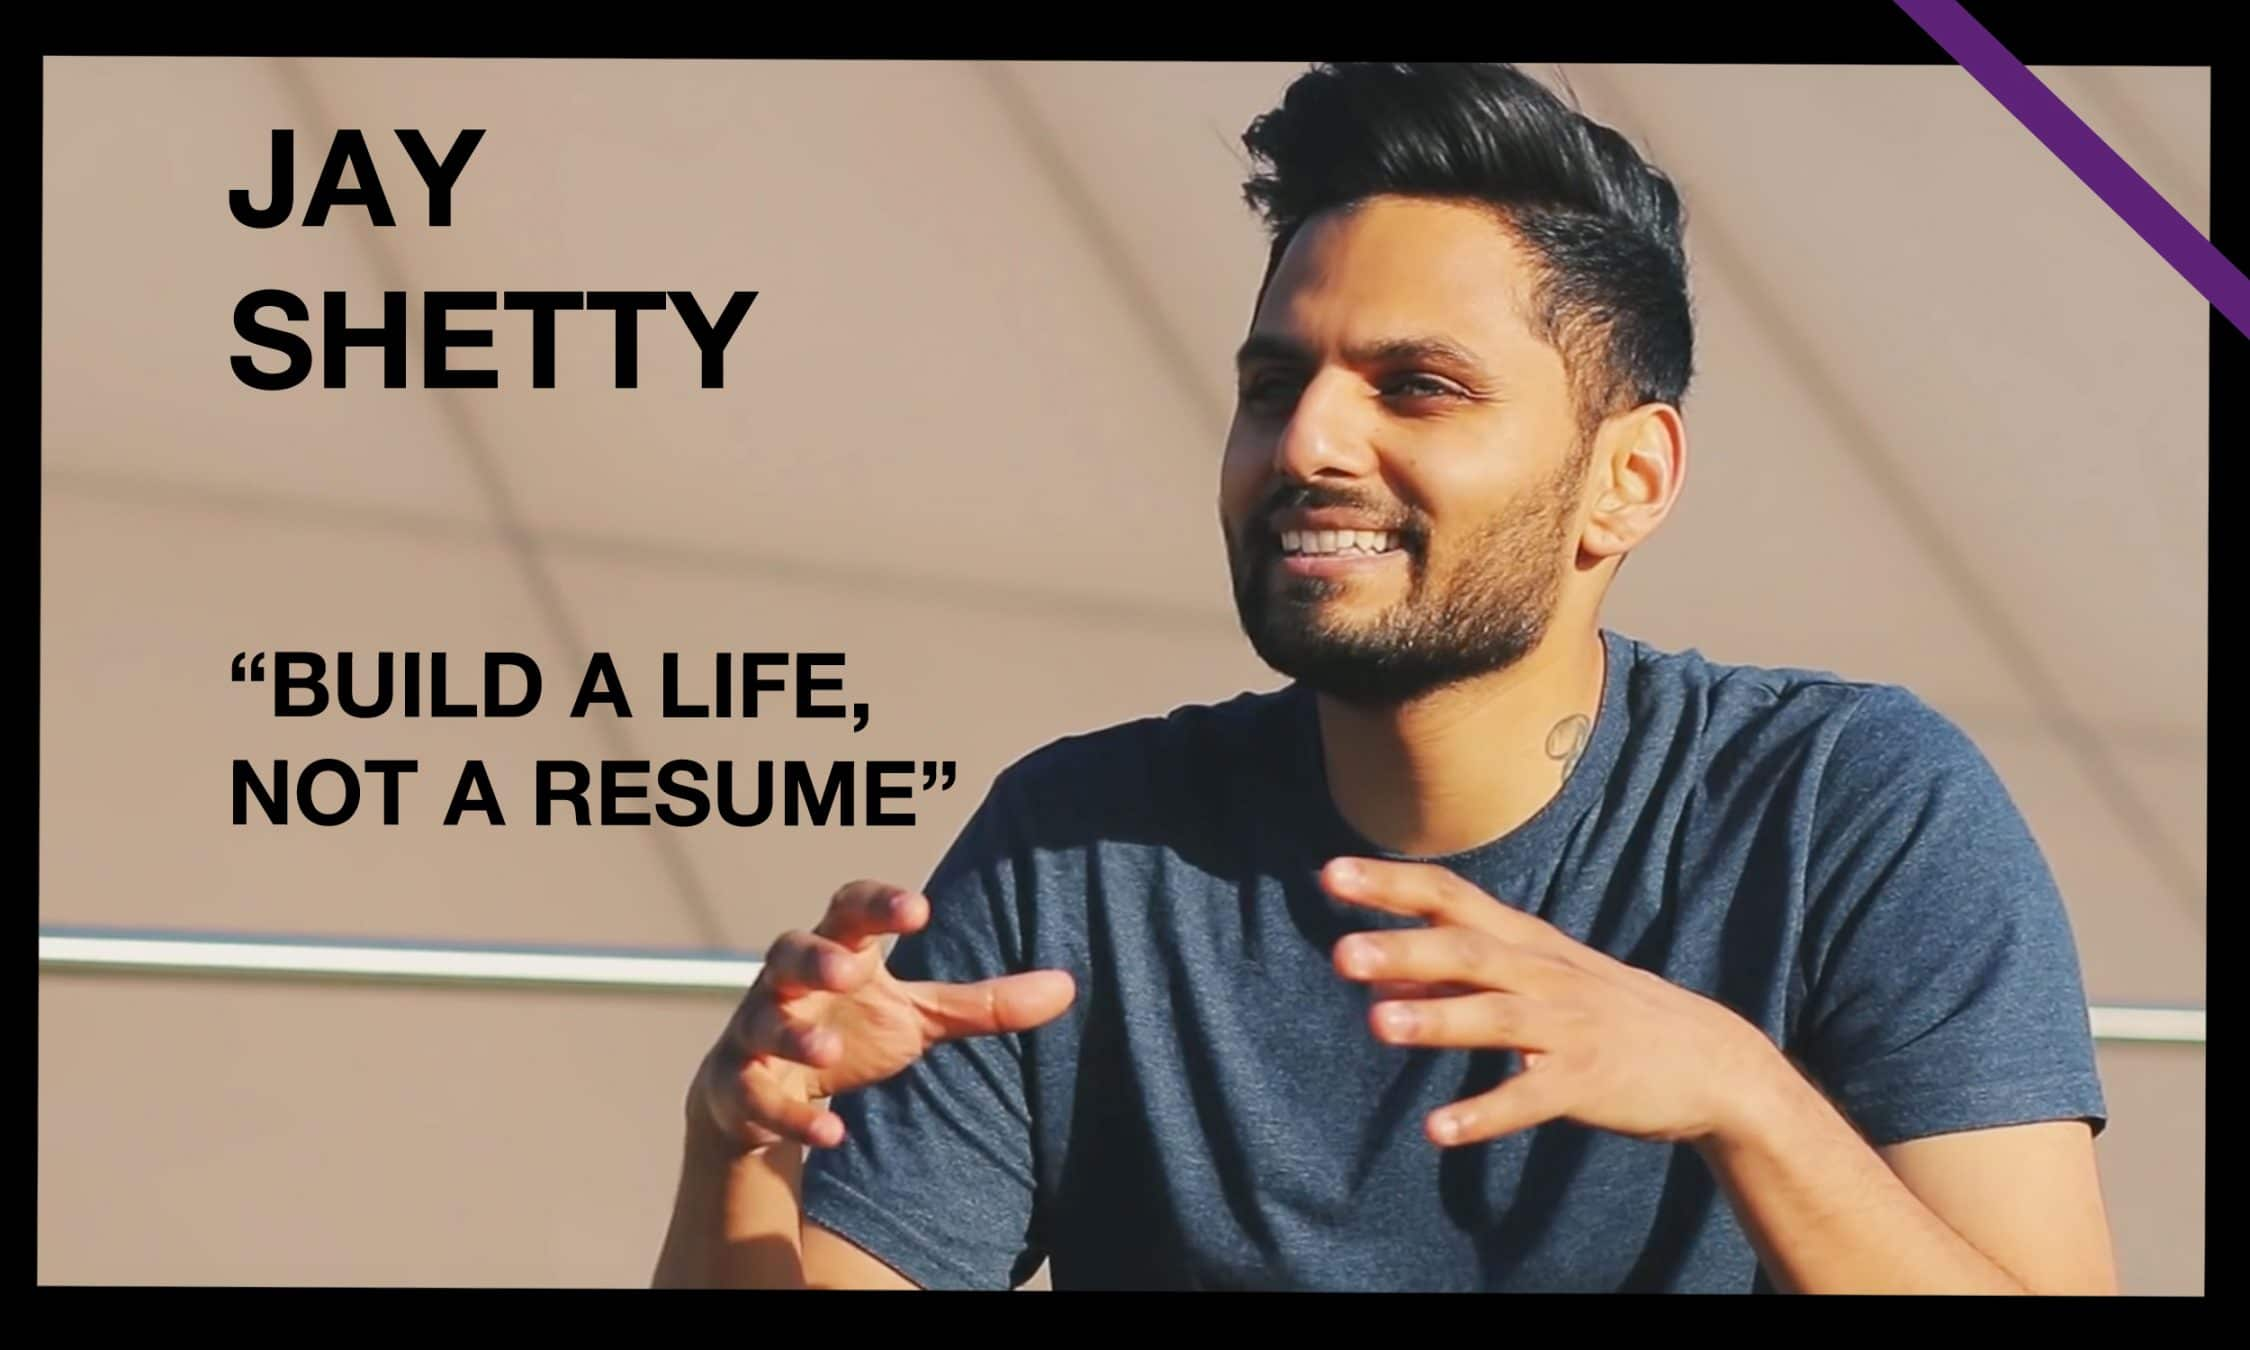 Foto De Jay Shetty Jay Shetty Someone I Look Up To T